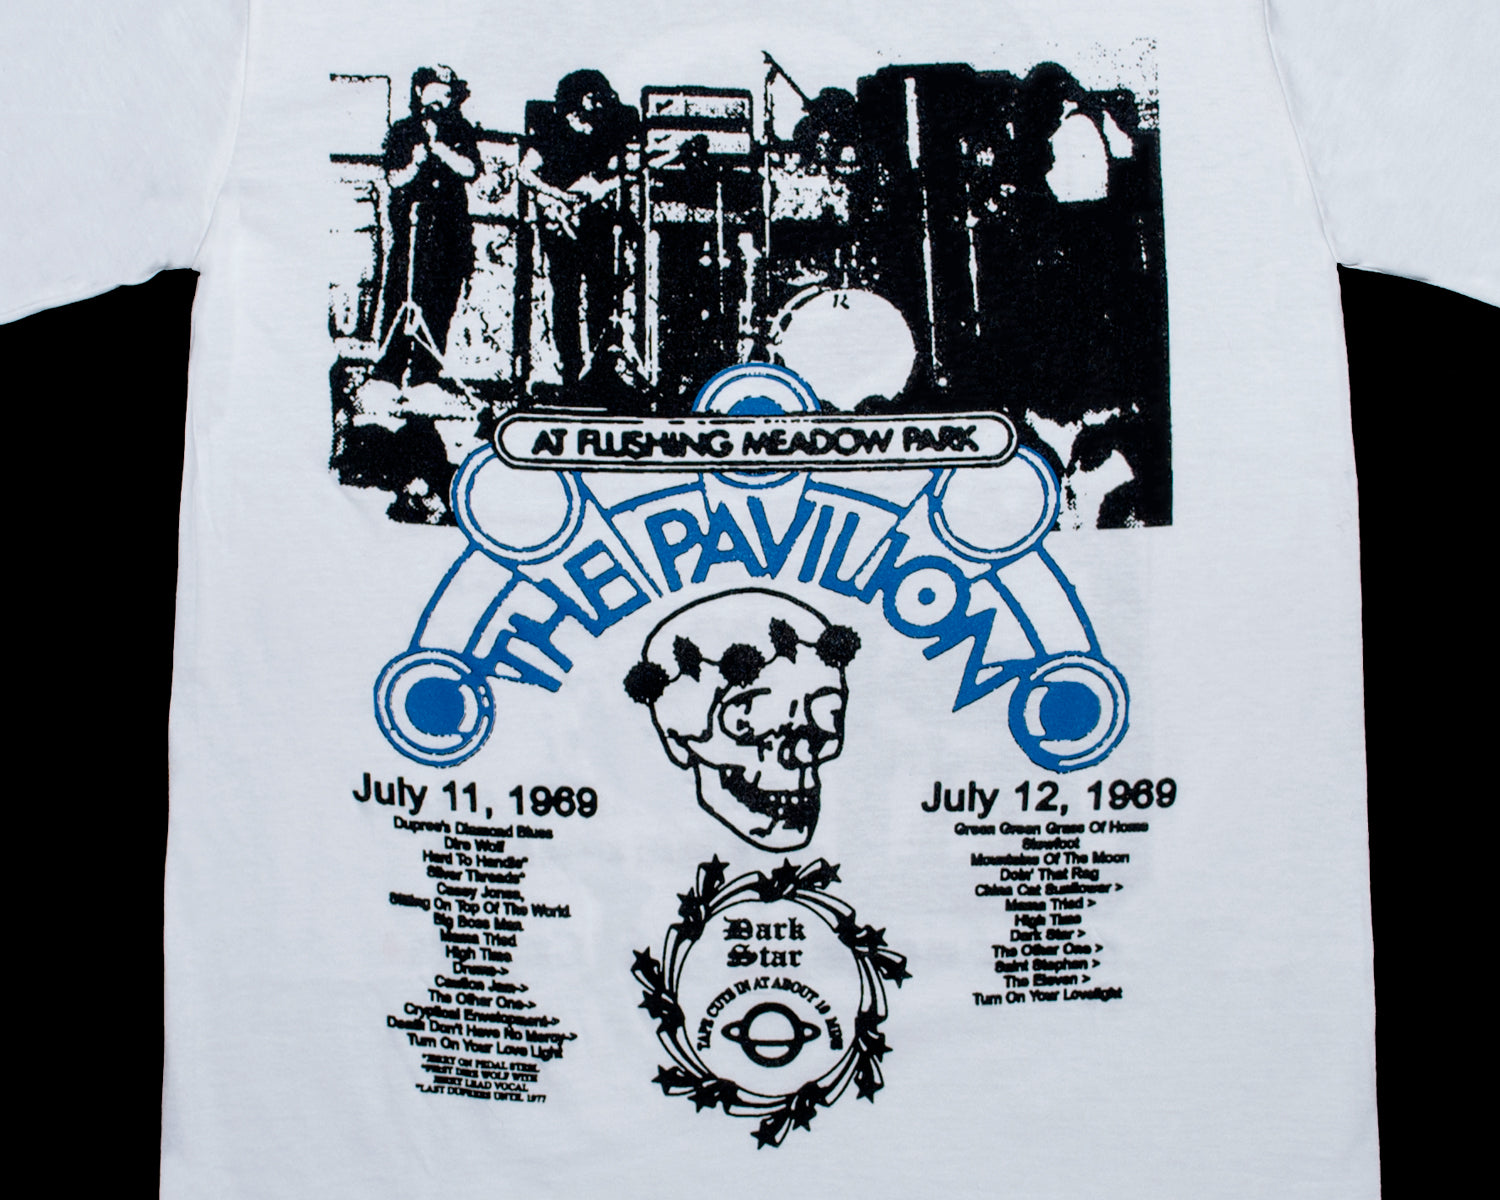 Grateful Dead - NYC Pavilion '69